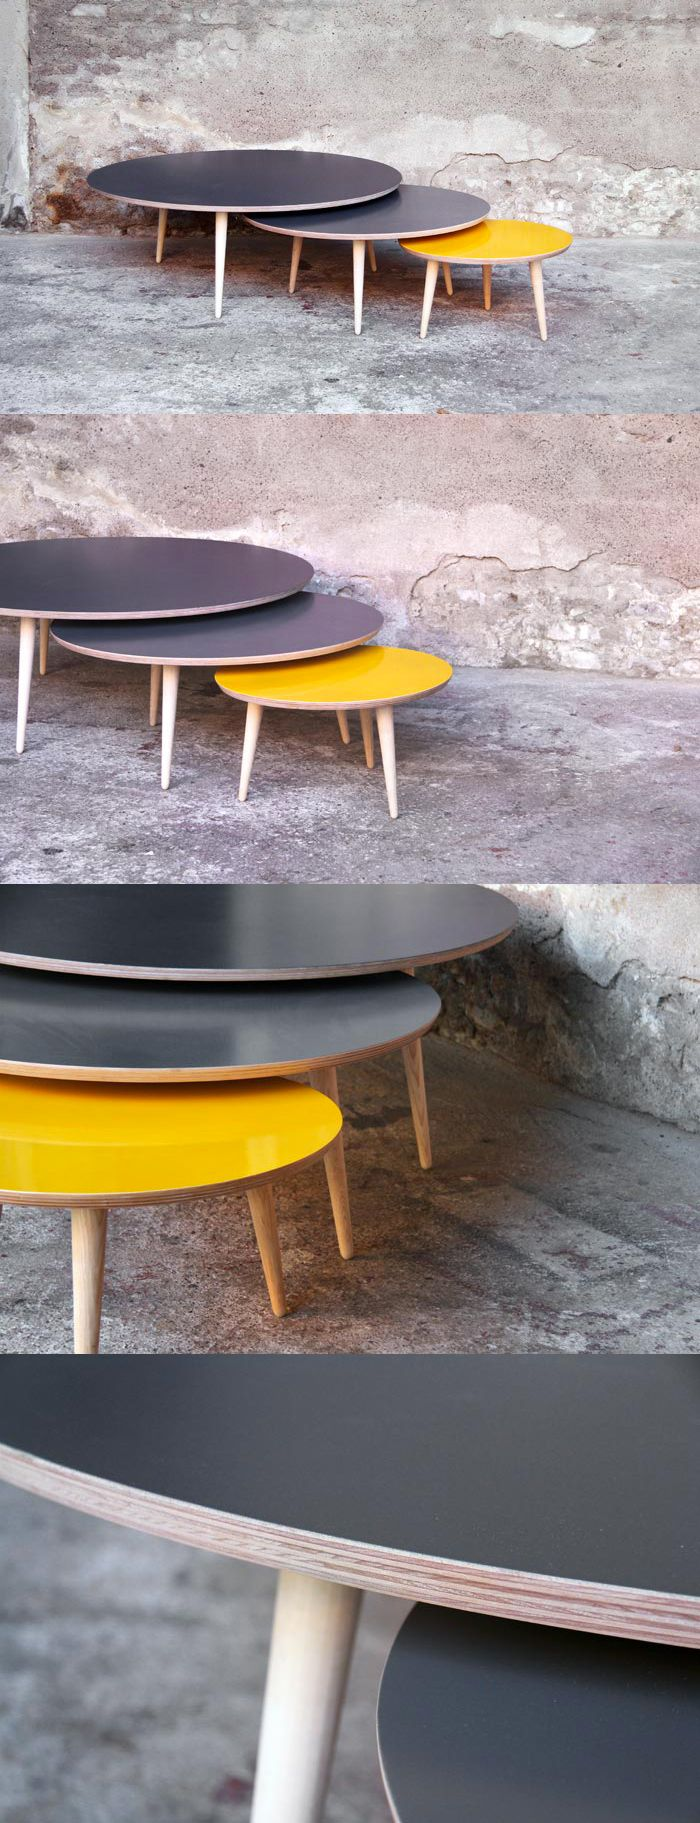 1000 Id Es Sur Le Th Me Tables Gigognes Sur Pinterest Petites Tables Basses Tables D 39 Appoint